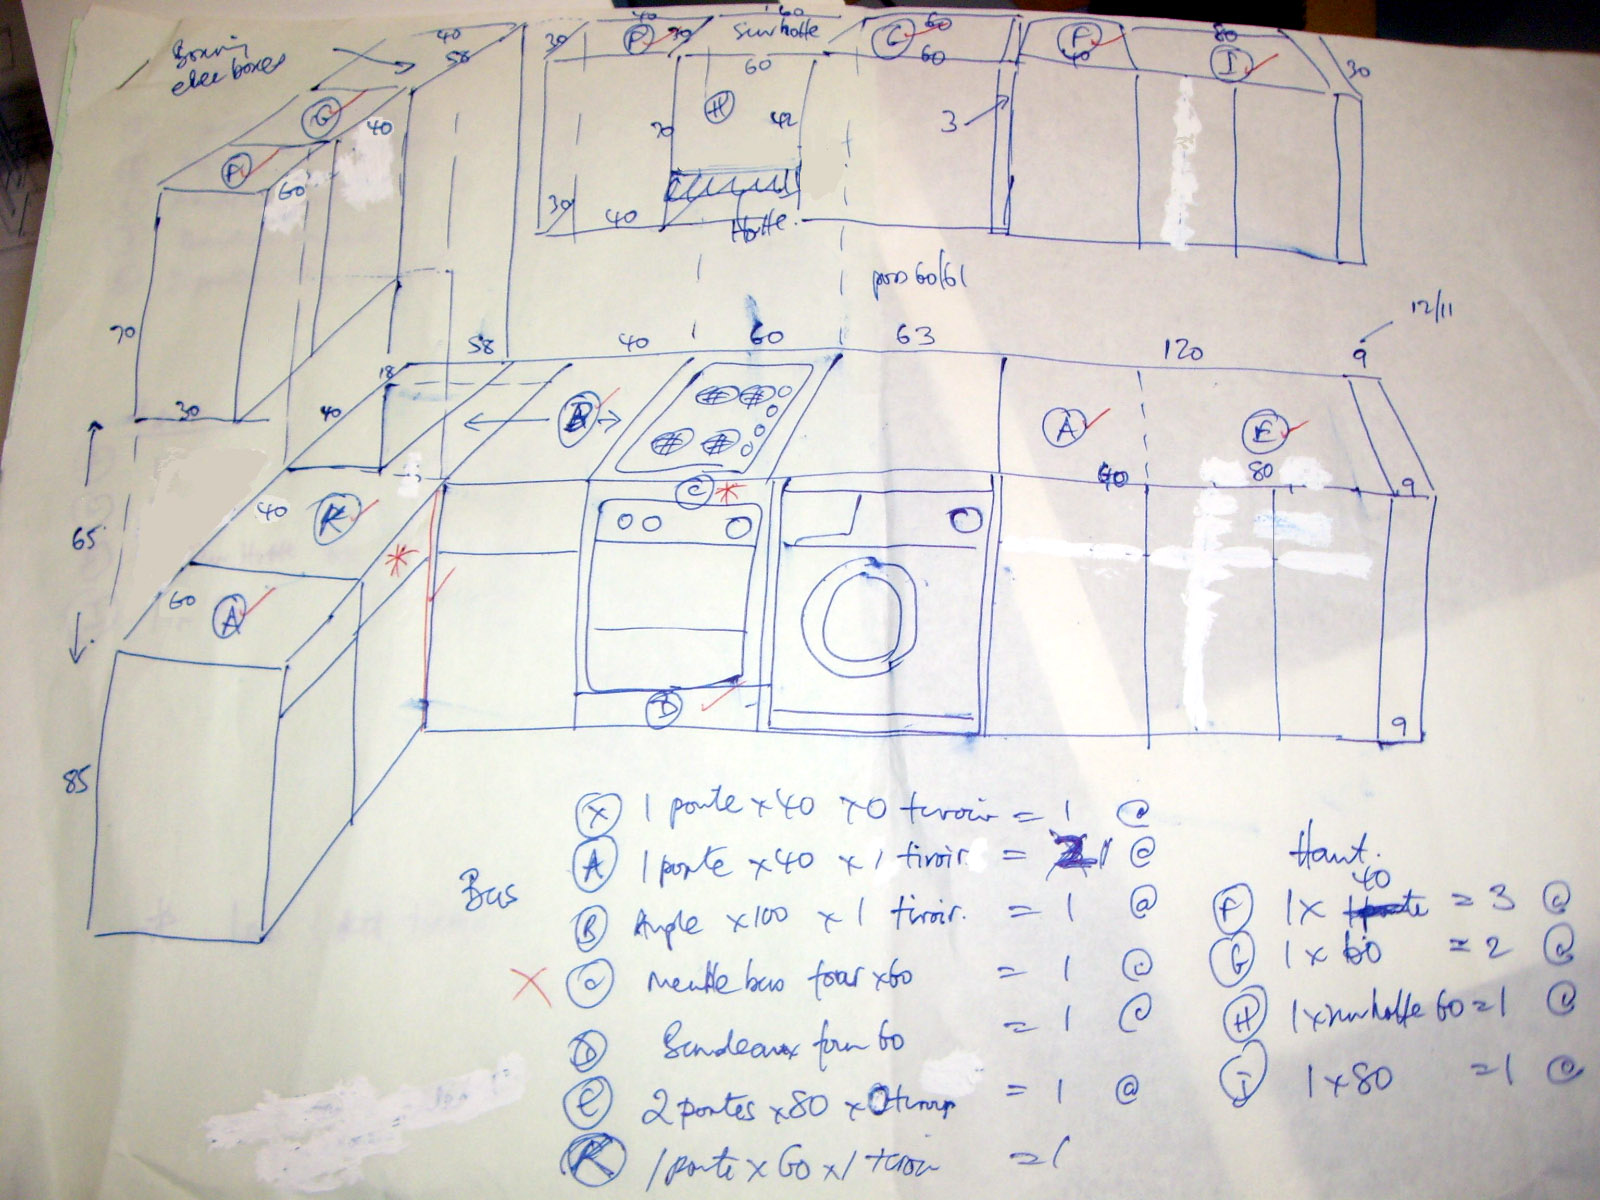 electrical drawing for kitchen the wiring diagram electrical drawing uk vidim wiring diagram electrical drawing